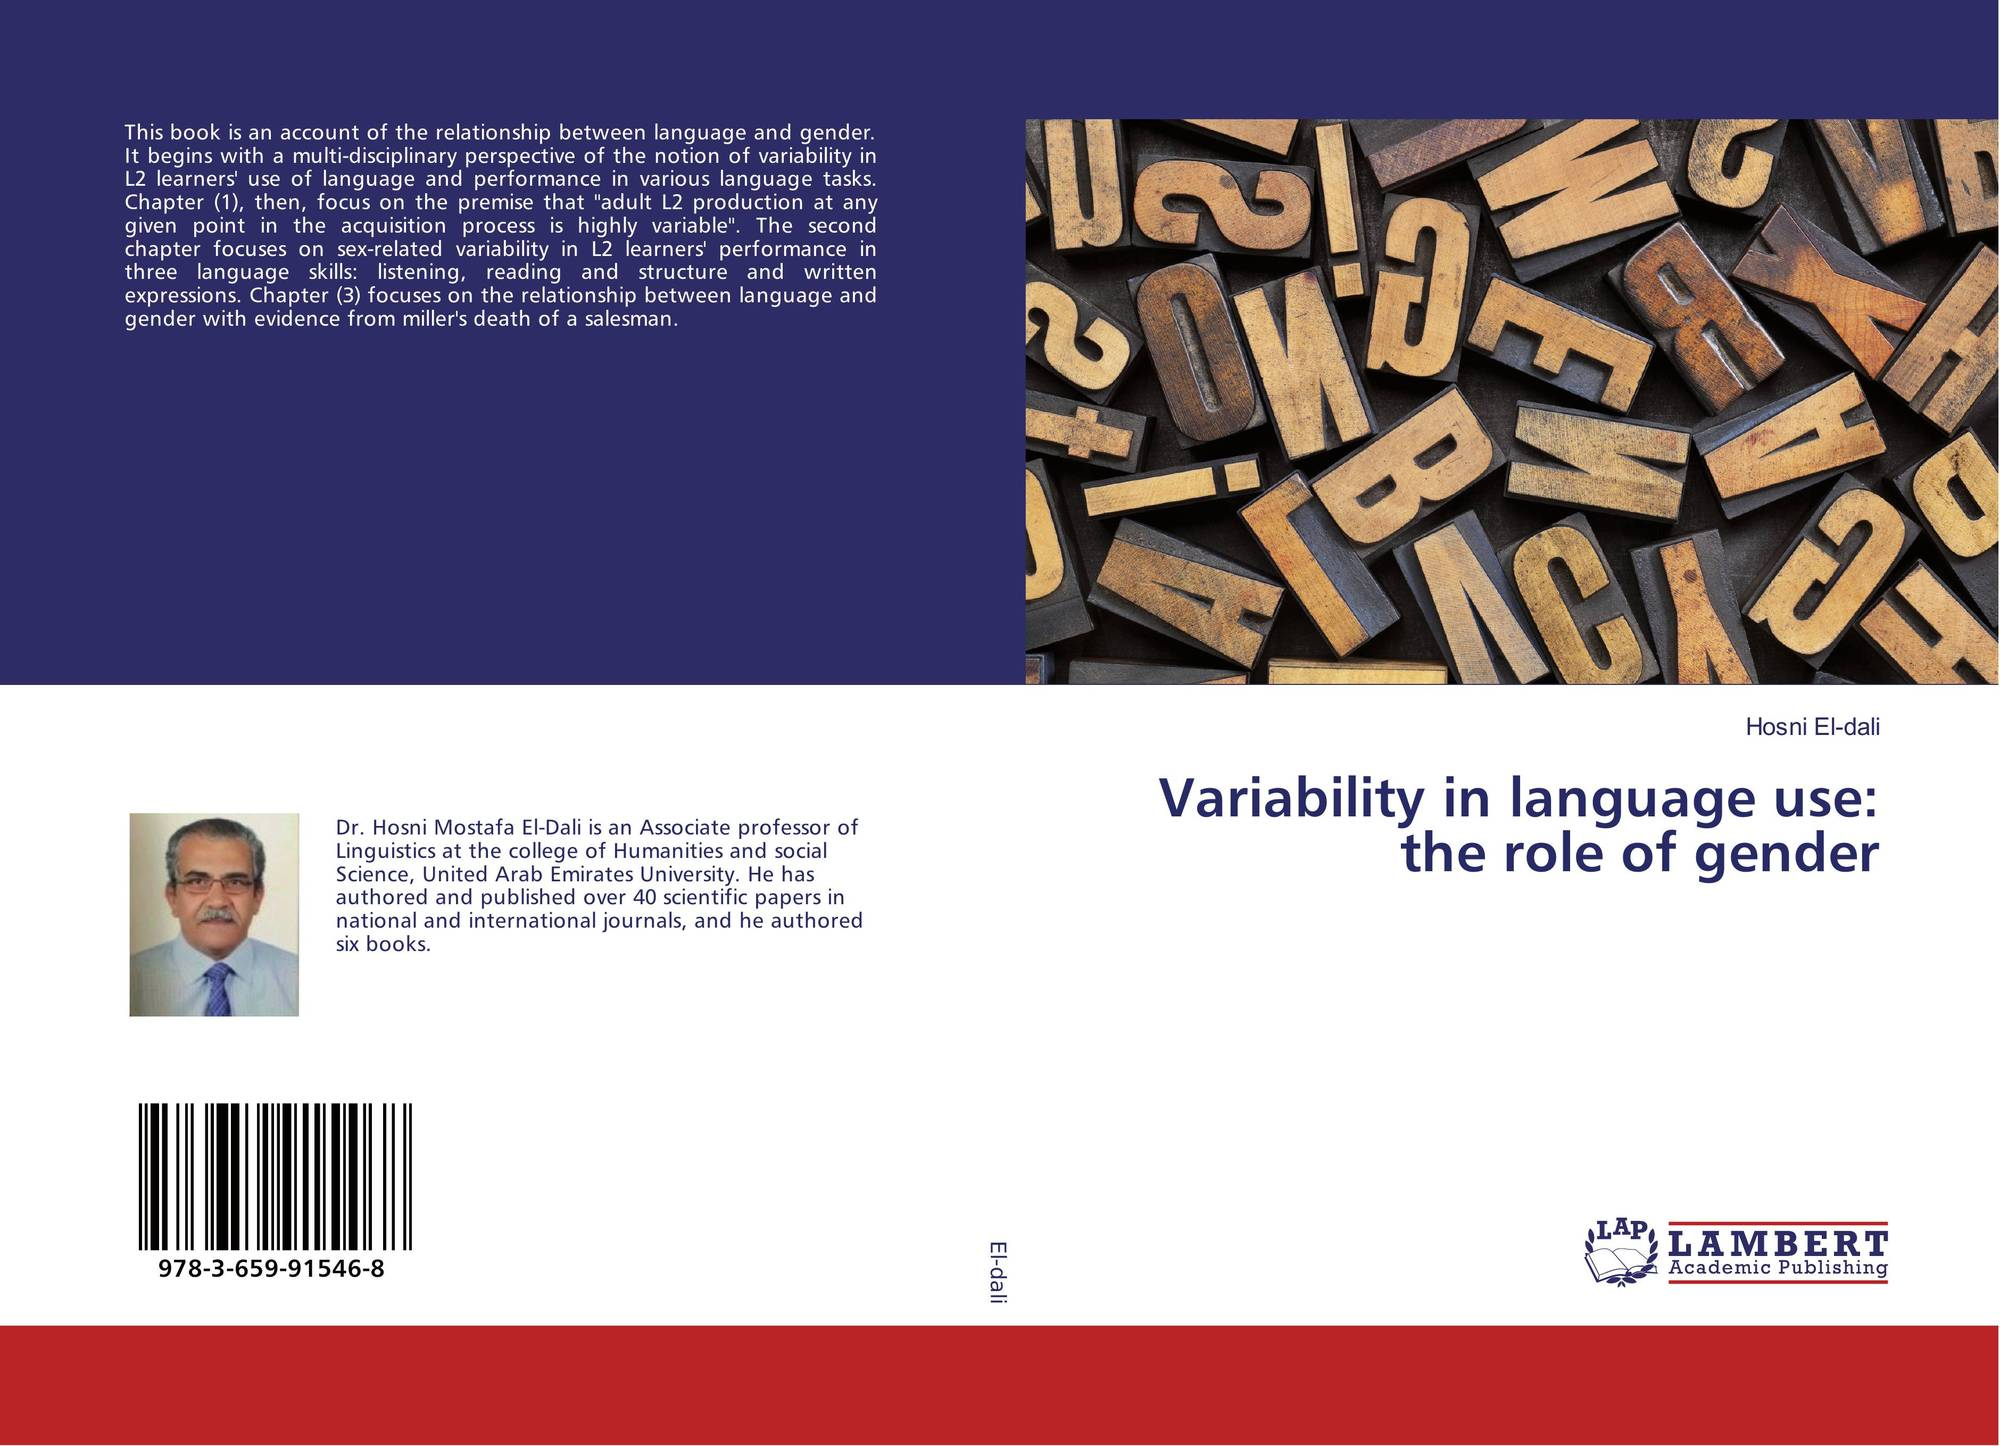 an analysis of language in relation to gender Teaching language and gender  language and gender in relation to children's  applied linguistics and text and discourse analysis language and gender syllabi.